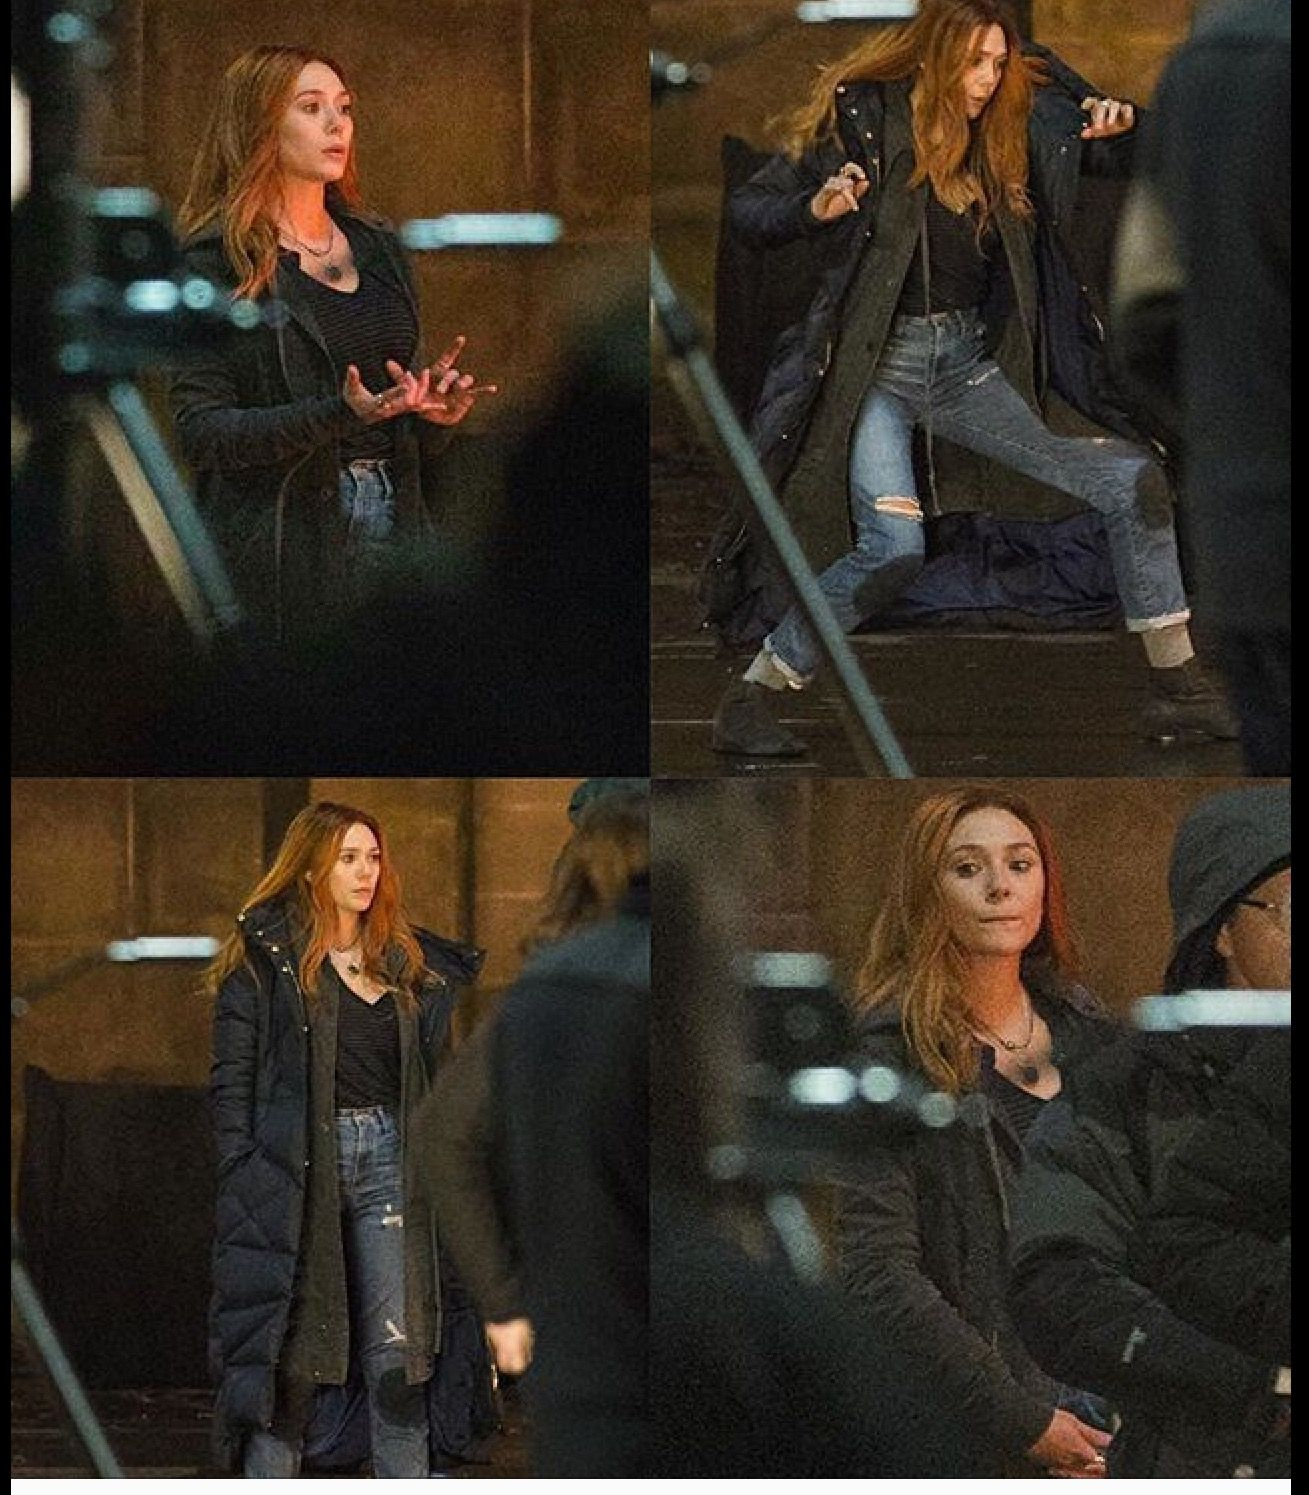 New Images Of Elizabeth Olsen Scarlet Witch On The Set Of Avengers Infinity War Scarlet Witch Elizabeth Olsen Scarlet Witch